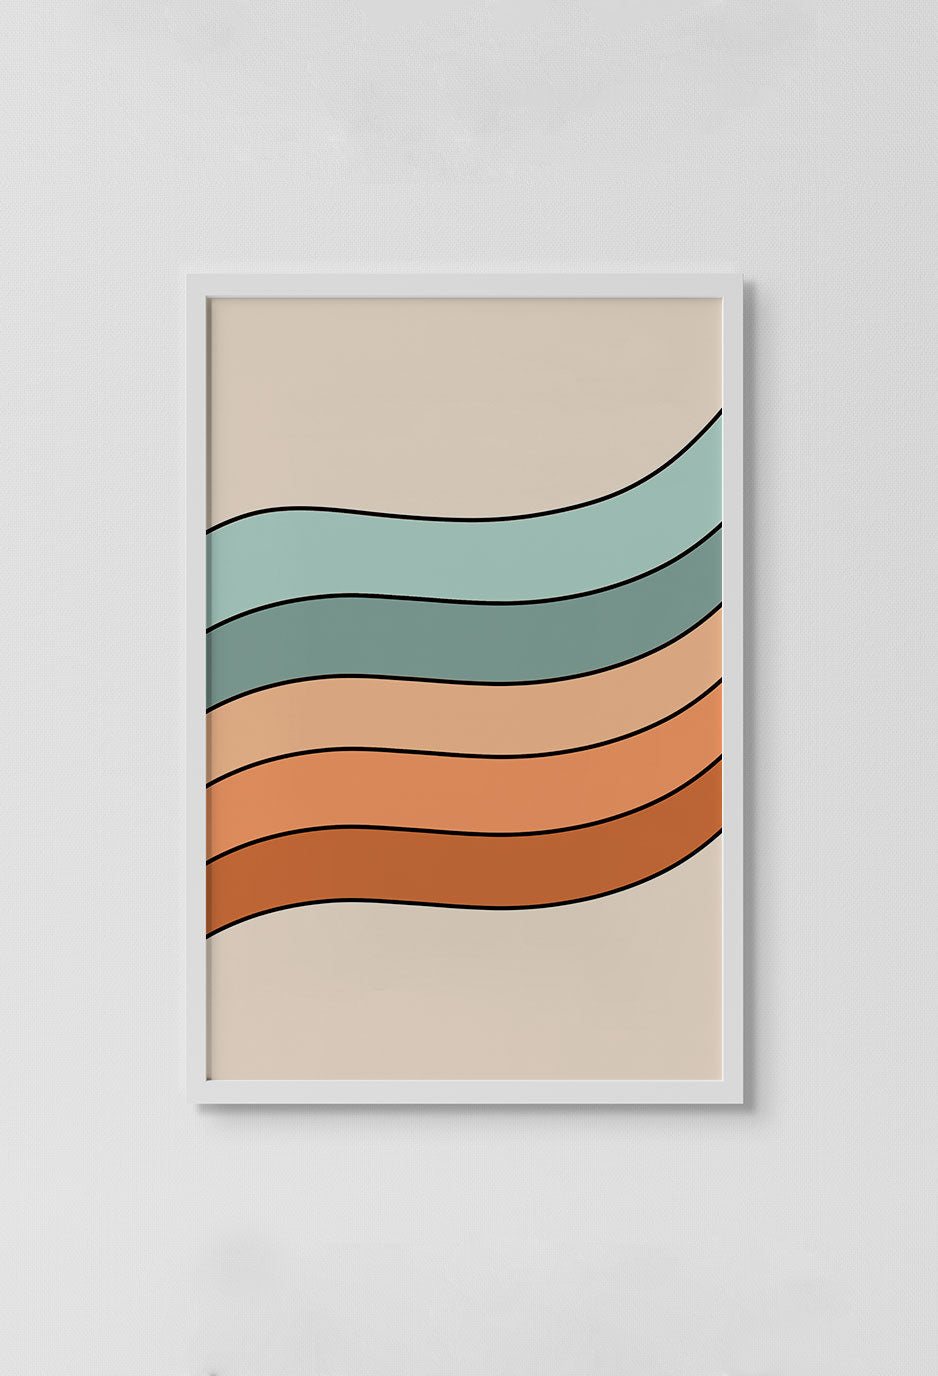 image of pink, orange, peach, turquoise and aqua colored wave stripe with beige background in white frame on white wall.